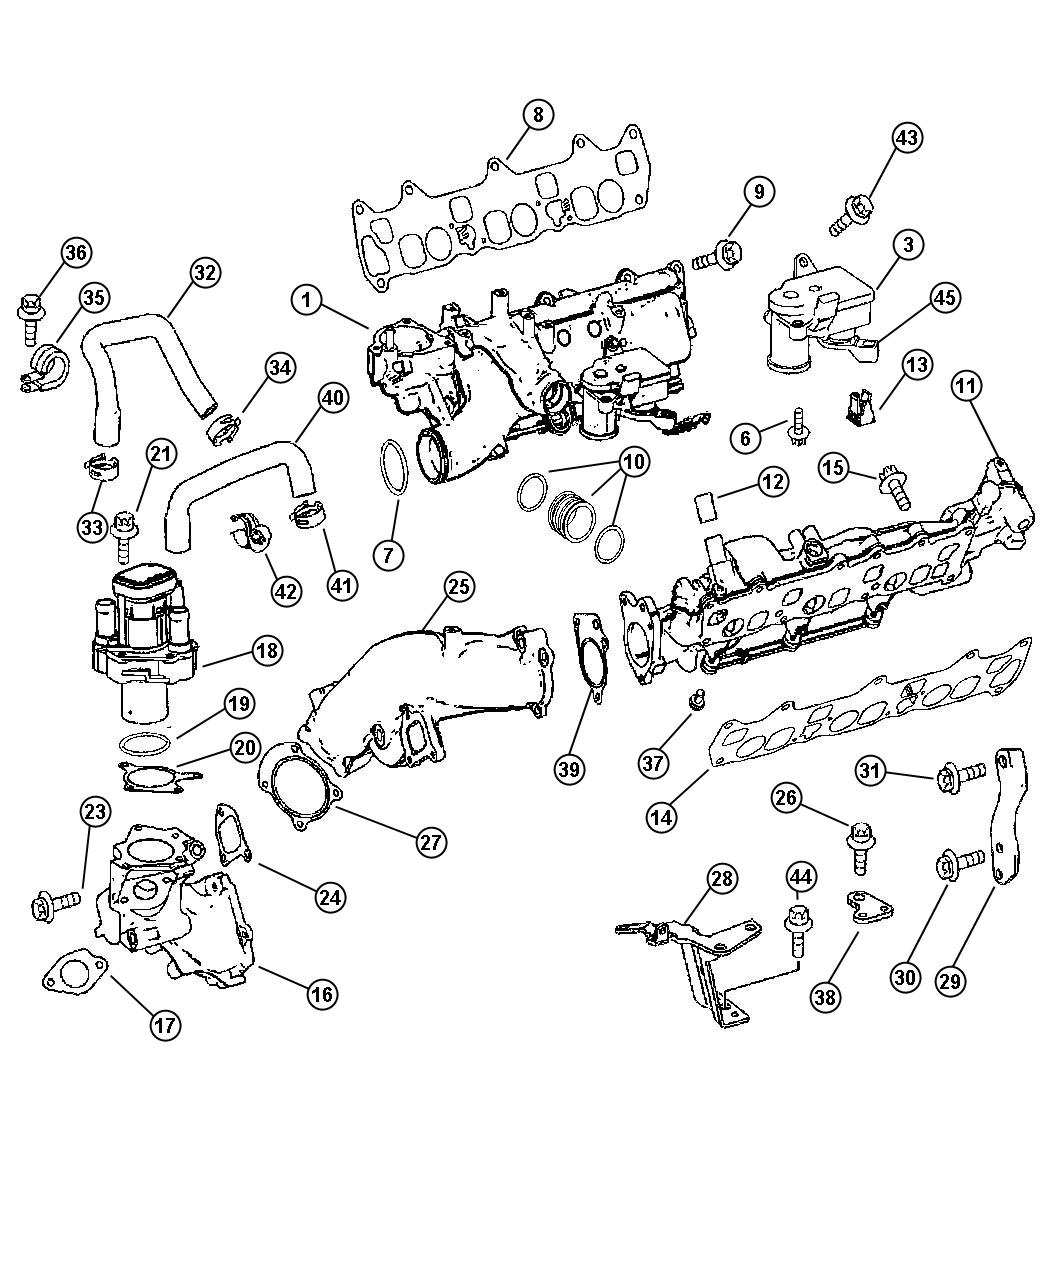 International 4300 air conditioning wiring diagram as well 1994 nissan sentra fuel pump relay location together